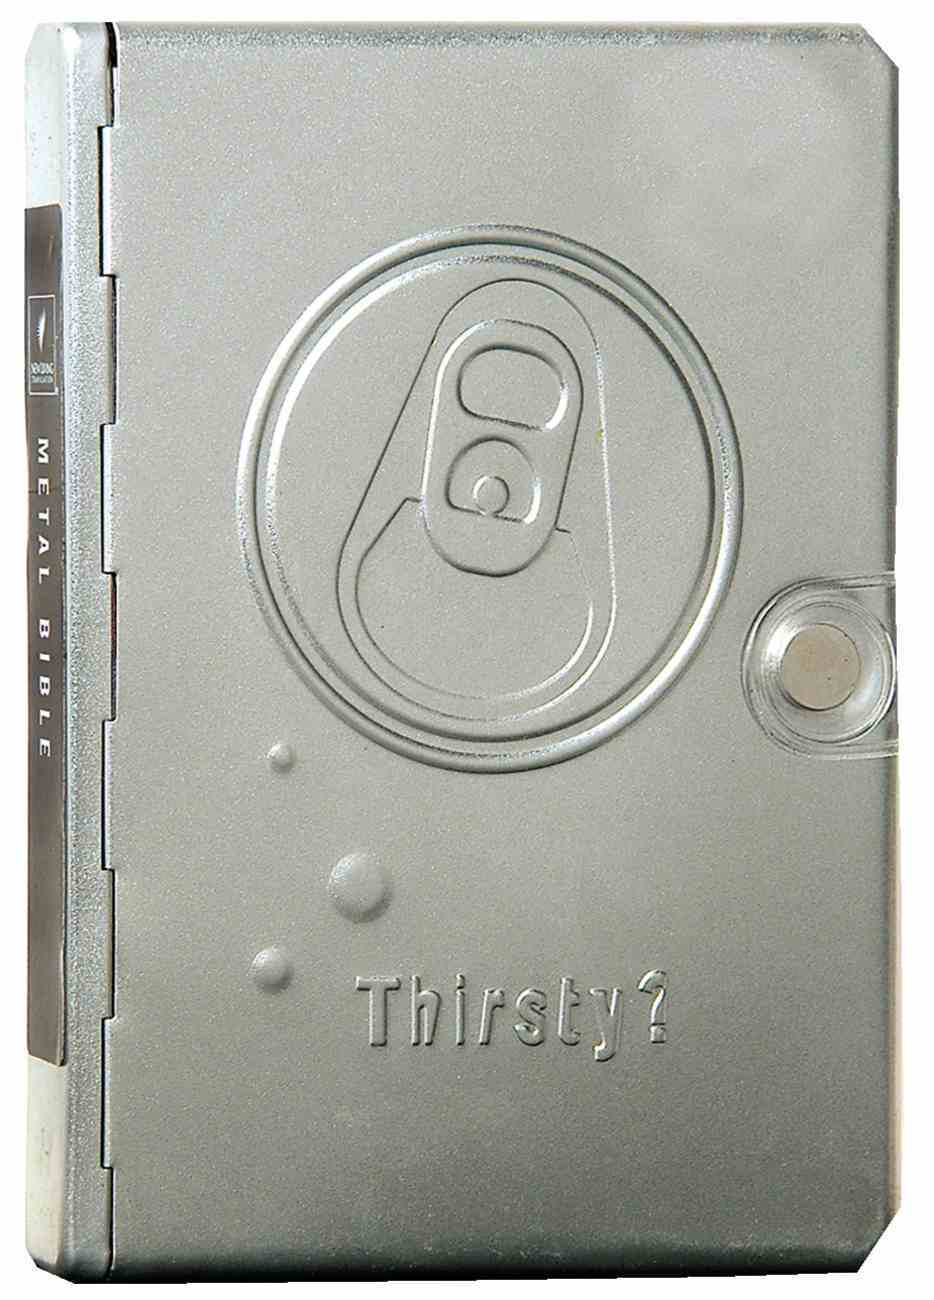 NLT Metal Bible Silver Thirsty (Black Letter Edition) (1st Ed.) Metal